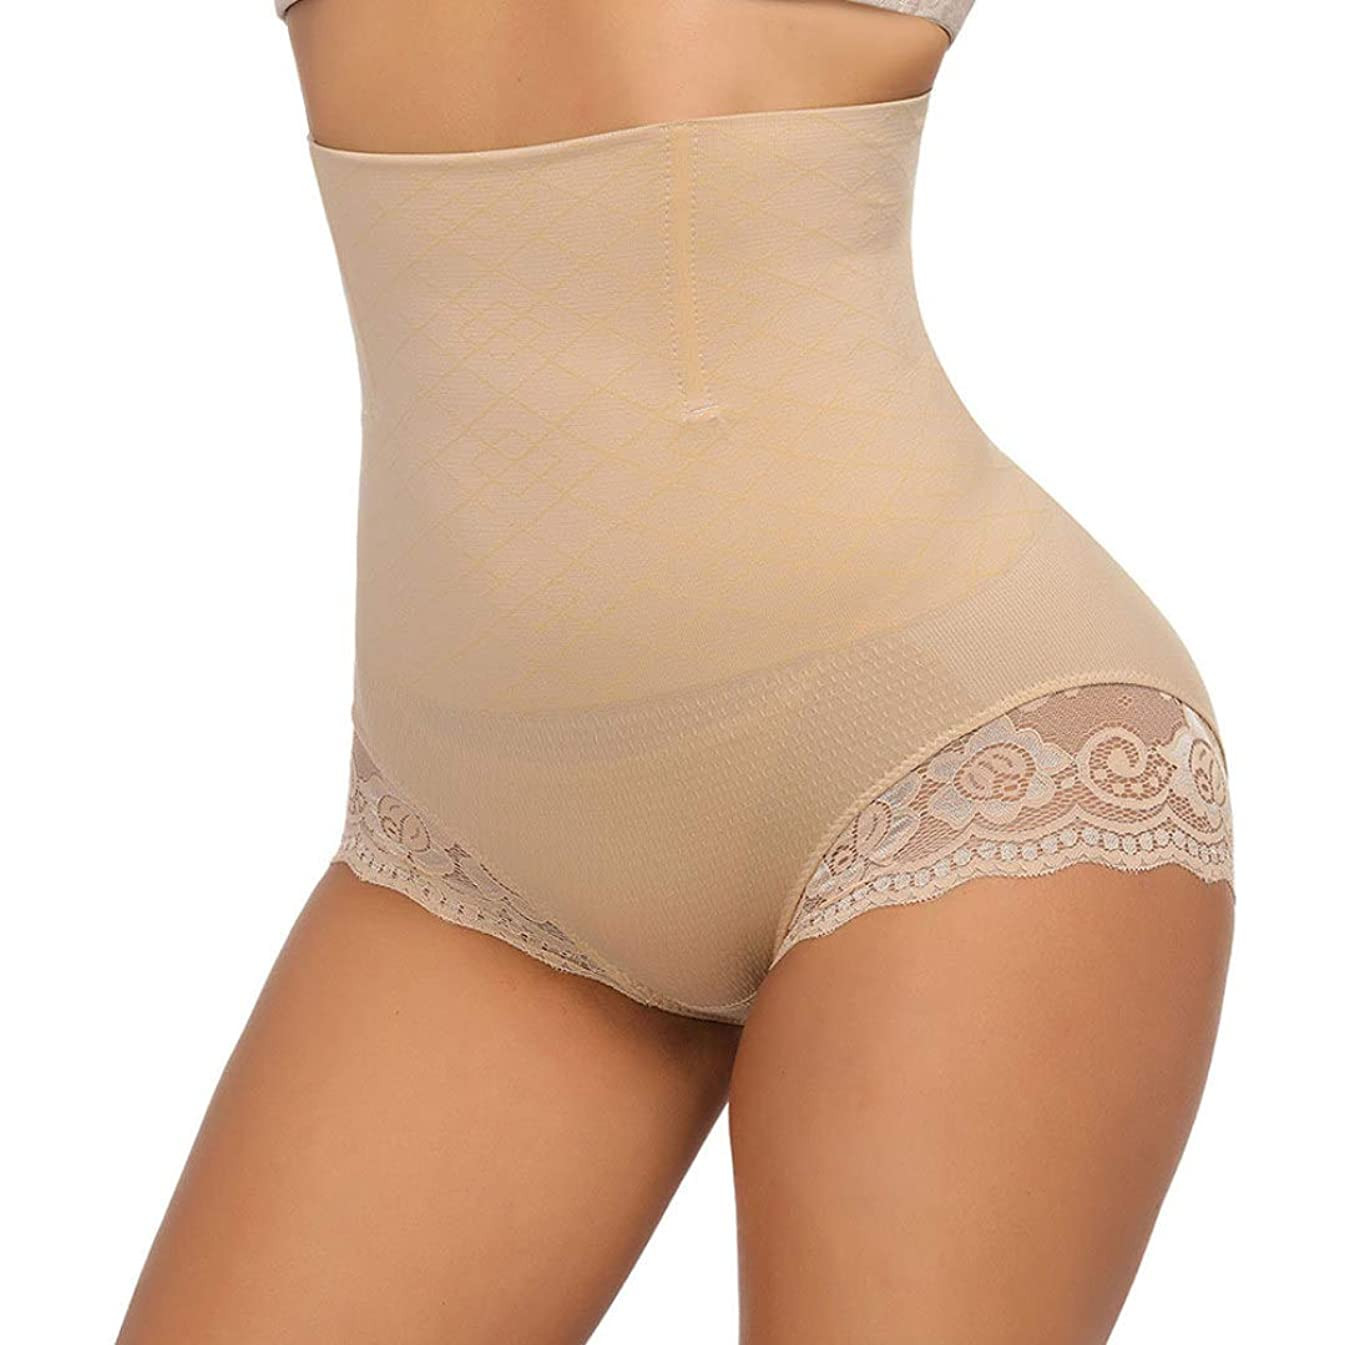 XOKIMI Invisable Body Shaper High Waist Tummy Control Panty Butt Lifter Shapewear Thong Waist Trainer for Women